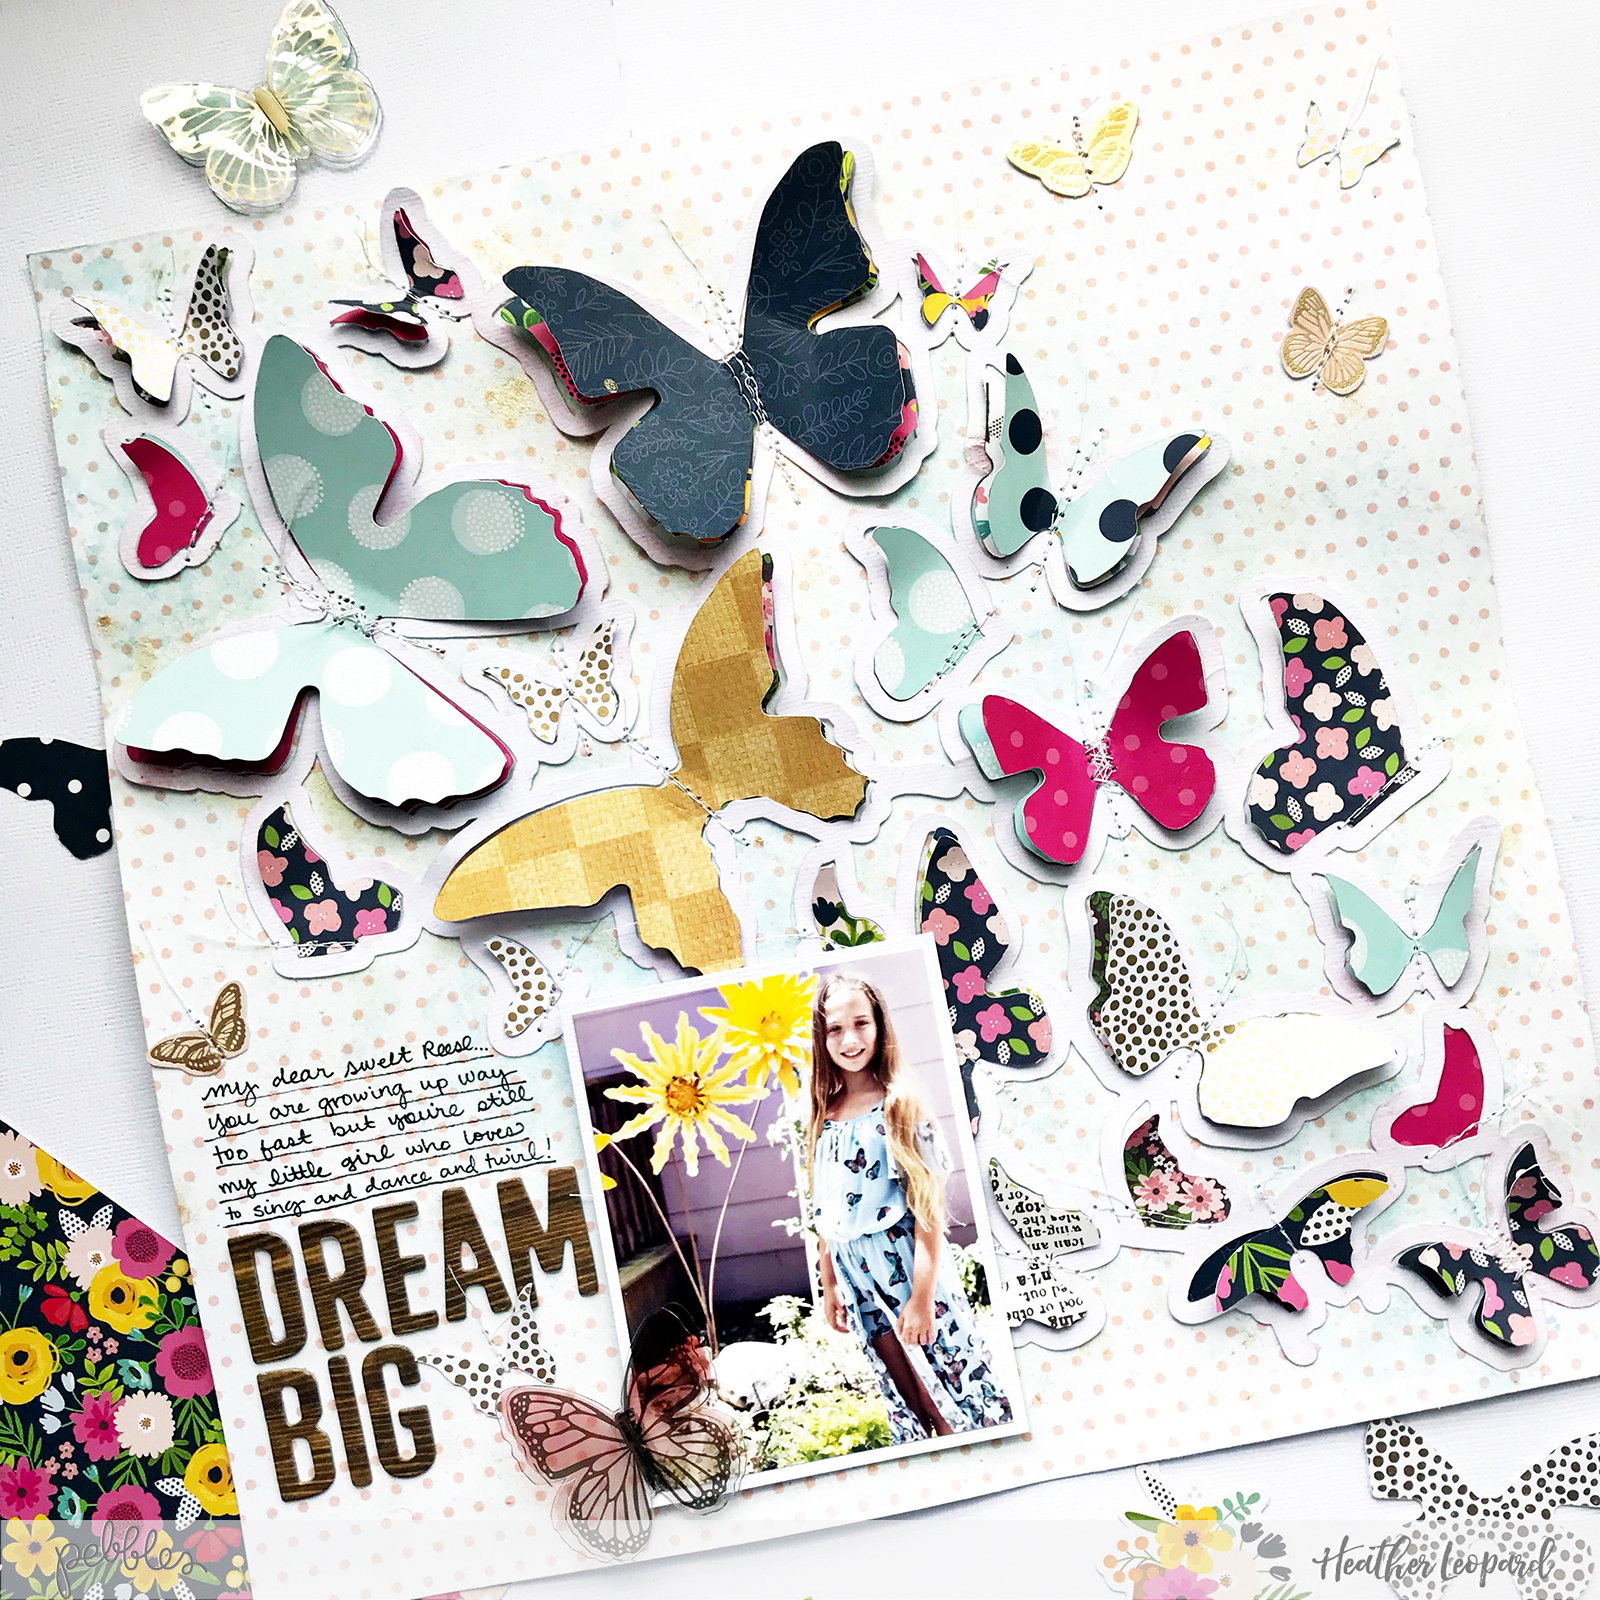 Dream Big Butterfly scrapbooking layout by @HeatherLeopard using @PebblesInc #PatioParty collection #madewithpebbles #scrapbooking #scrapbook #butterfly #dreambig #paigeevans